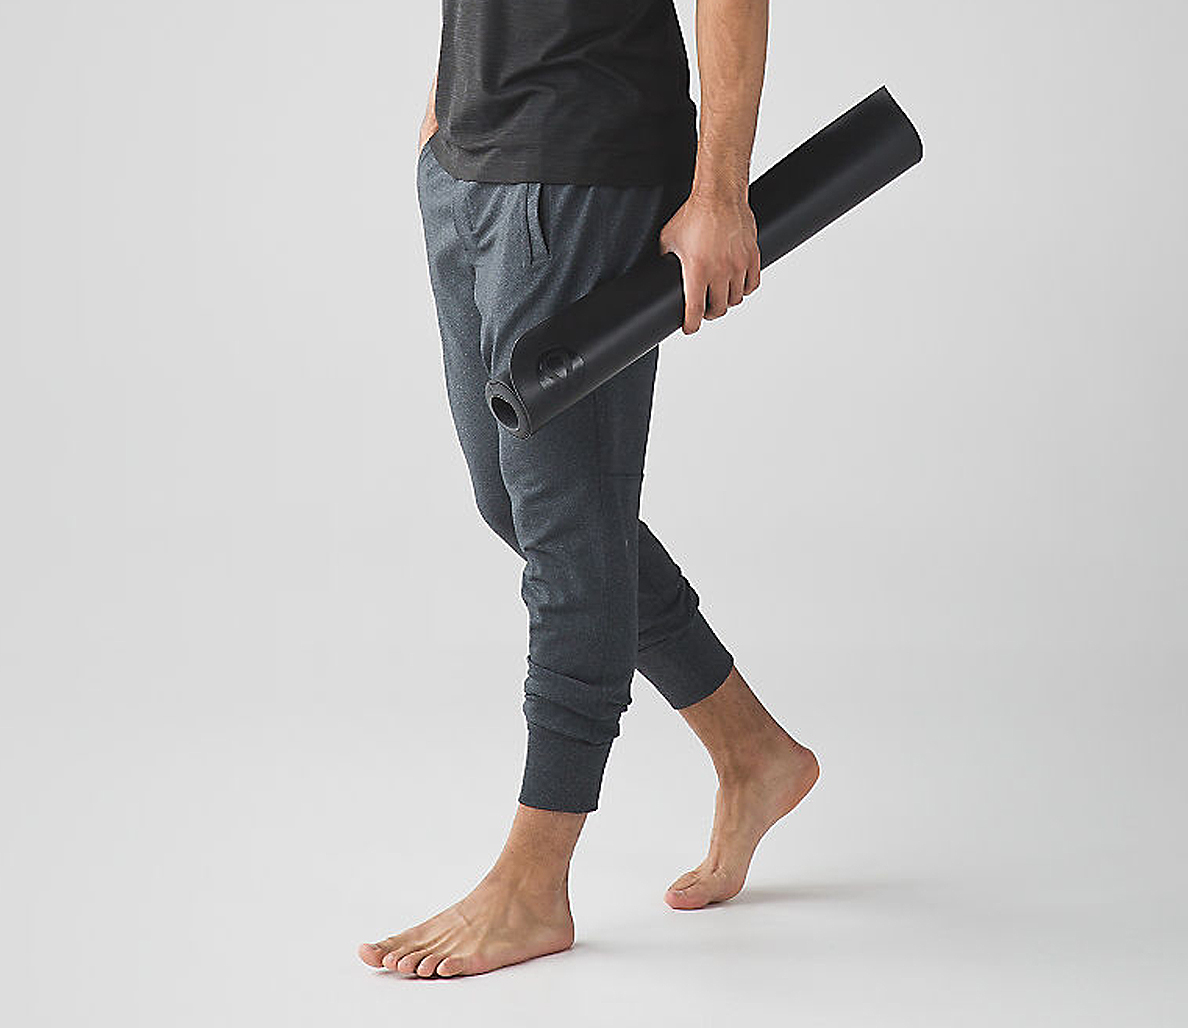 The Best Yoga Apparel for Men